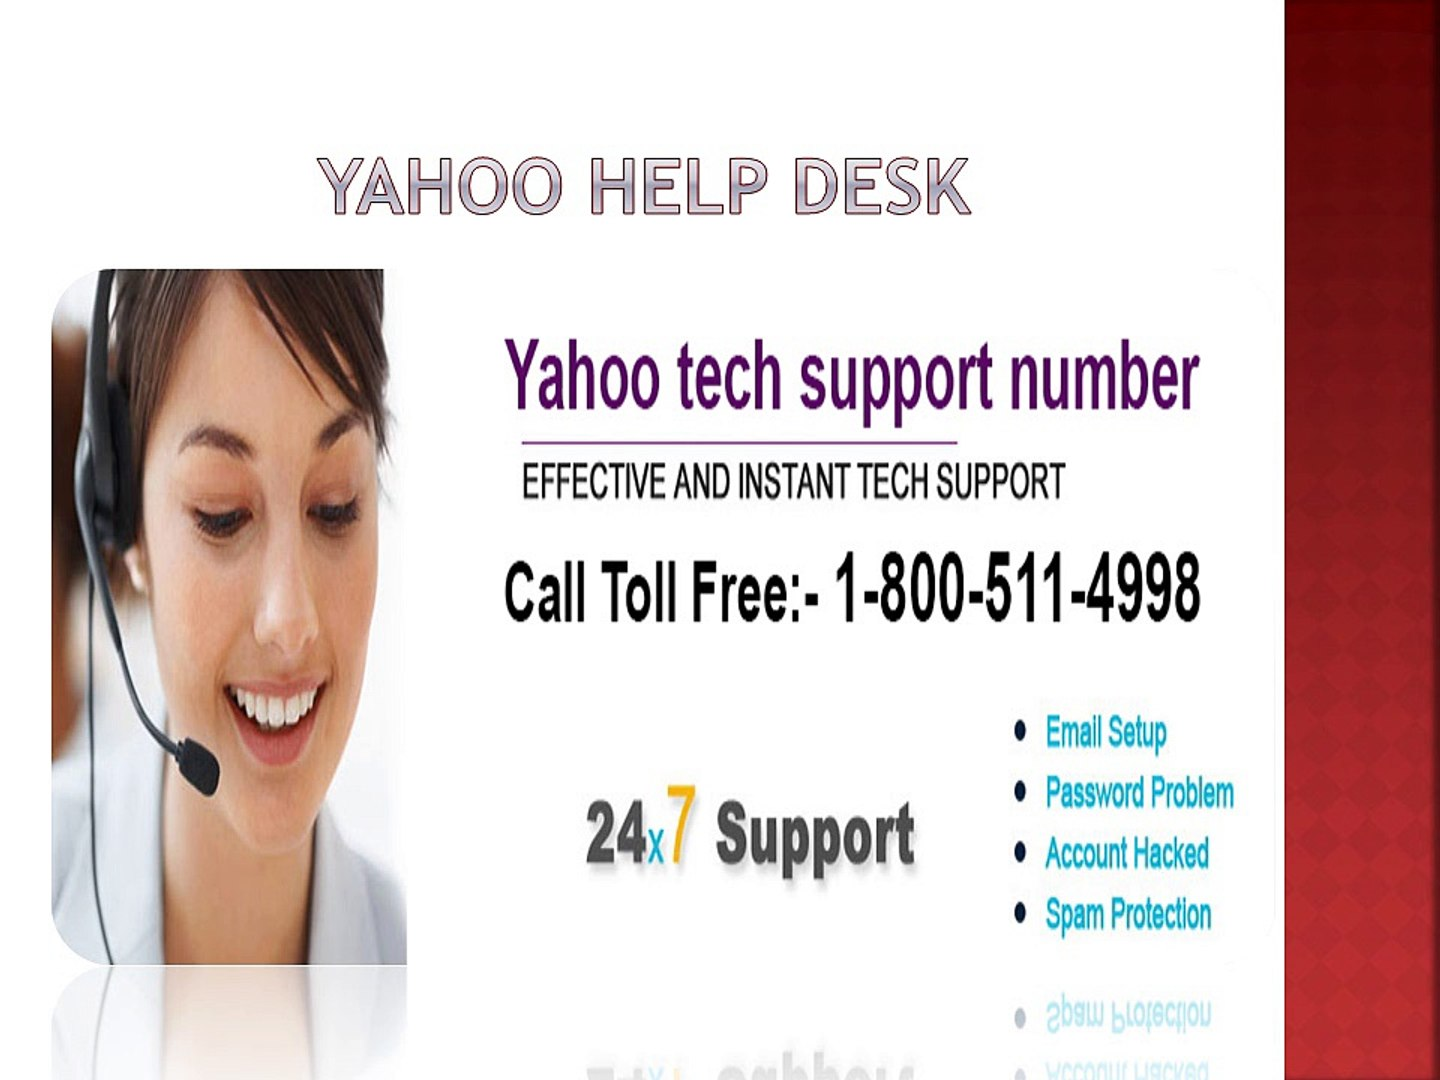 Yahoo help desk to resolve issues of yahoo